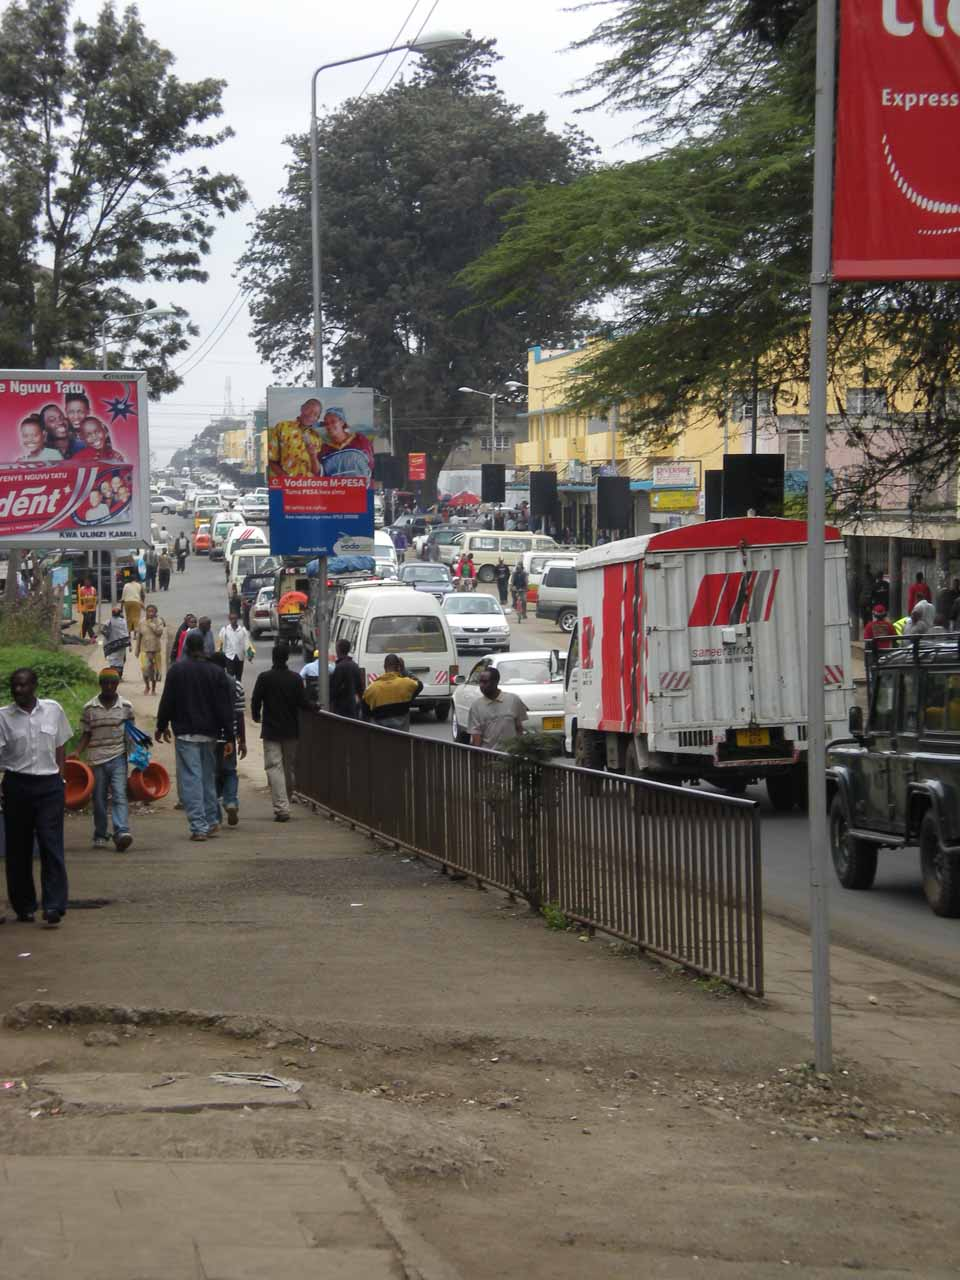 The busy city of Arusha